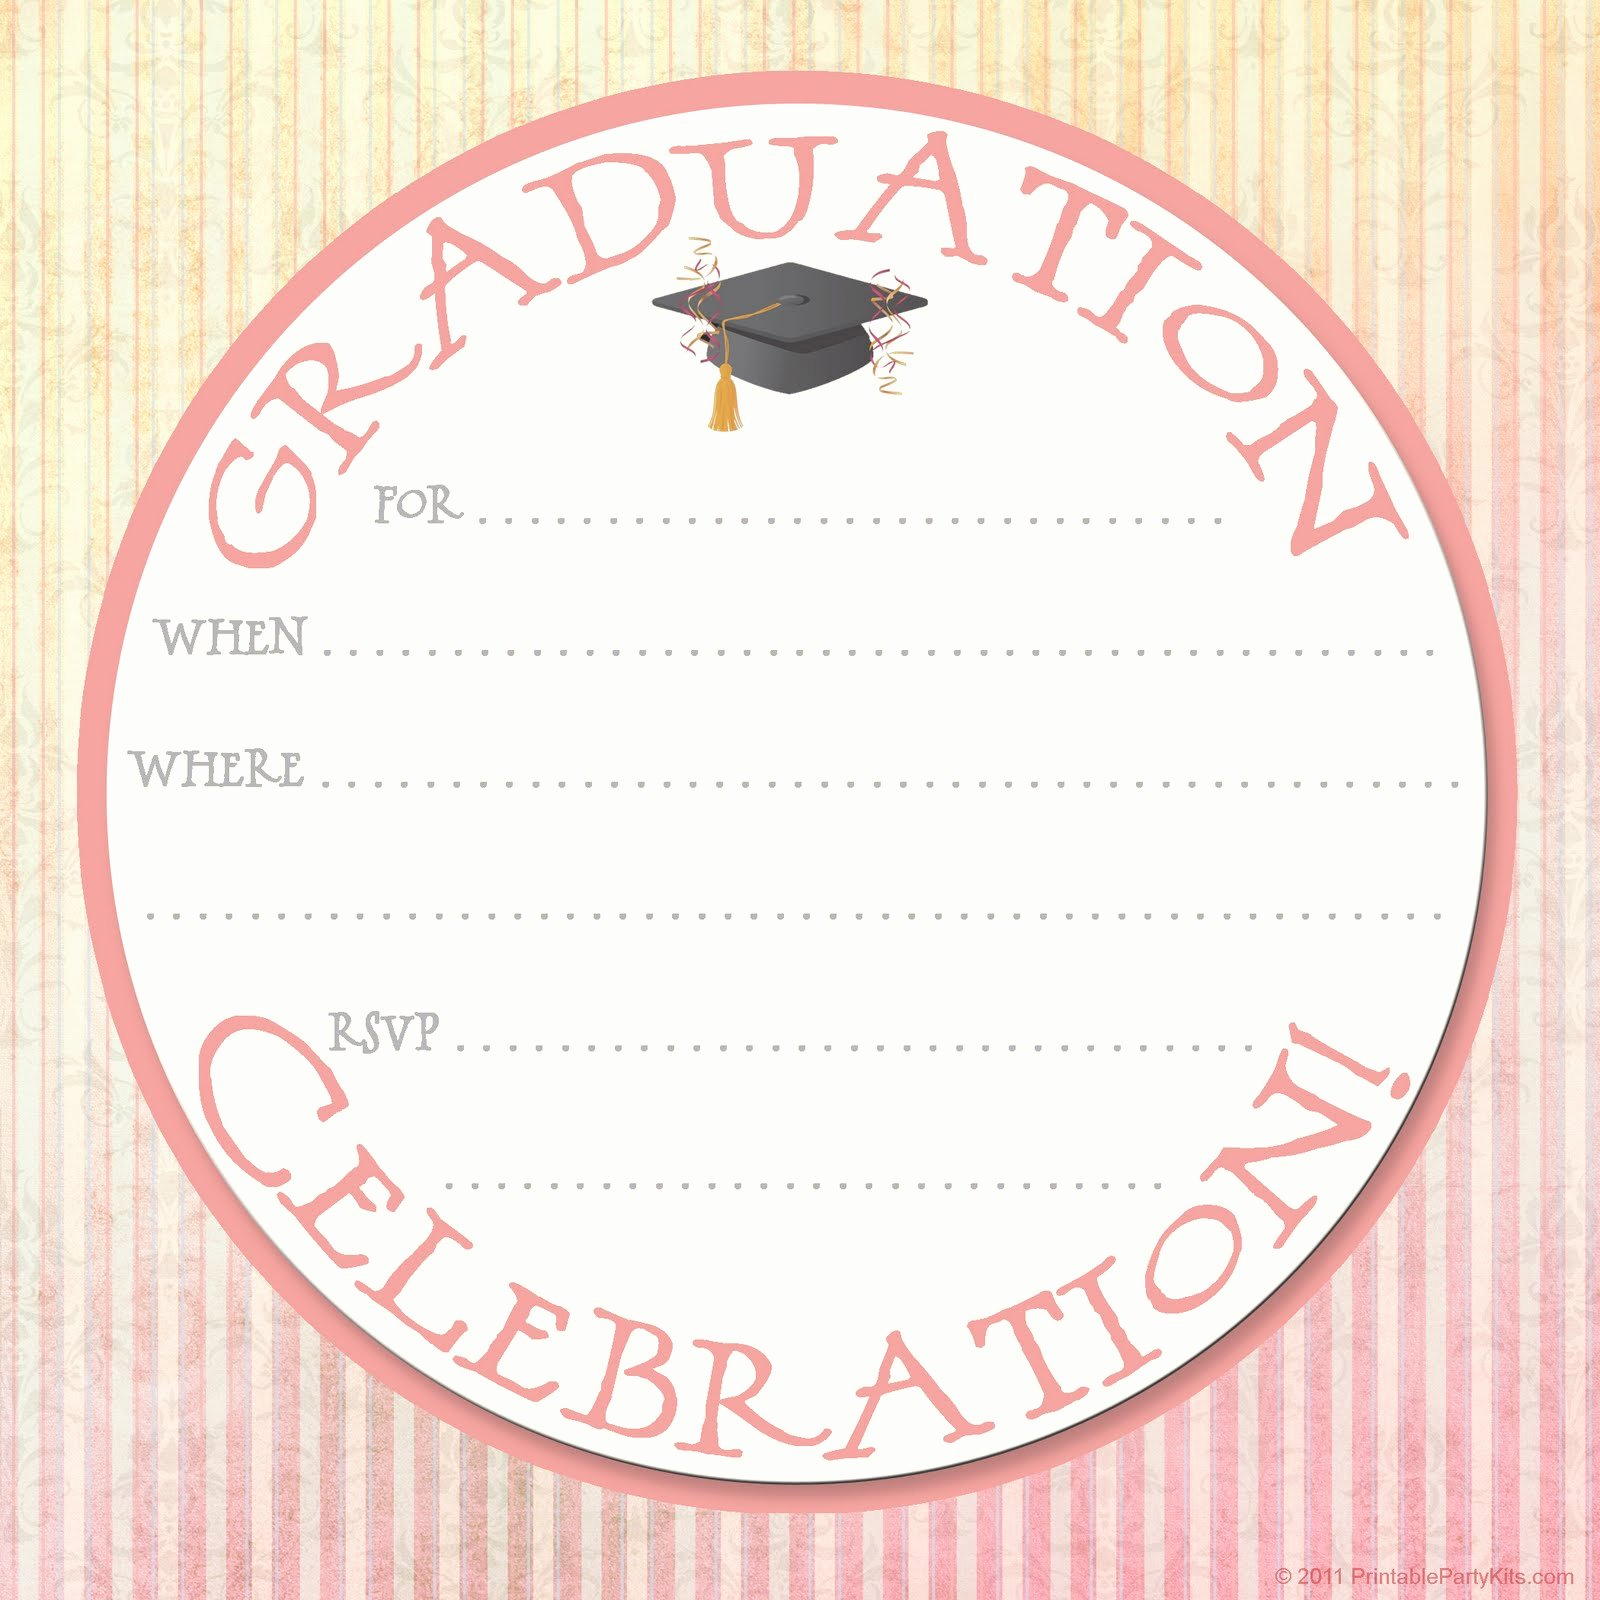 Graduation Party Invitation Template Free Fresh Free Printable Party Invitations Graduation Party